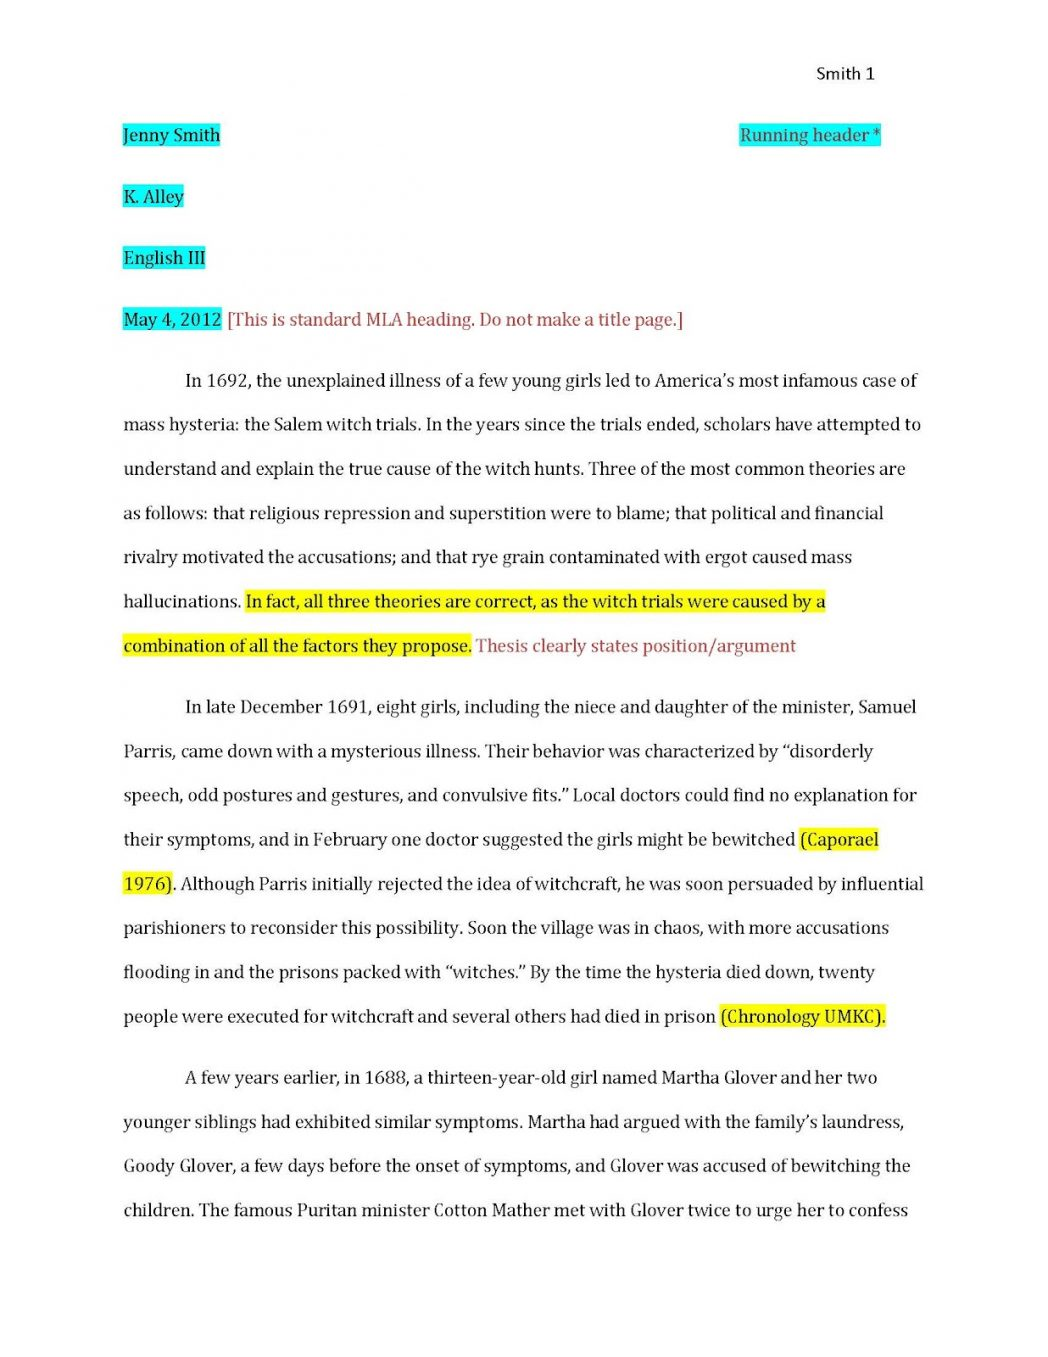 002 Mla Format Essay Generator Author Date References System Ready Set Automaticpaper P 1048x1357 Wondrous Bot Online Free Reviews Full